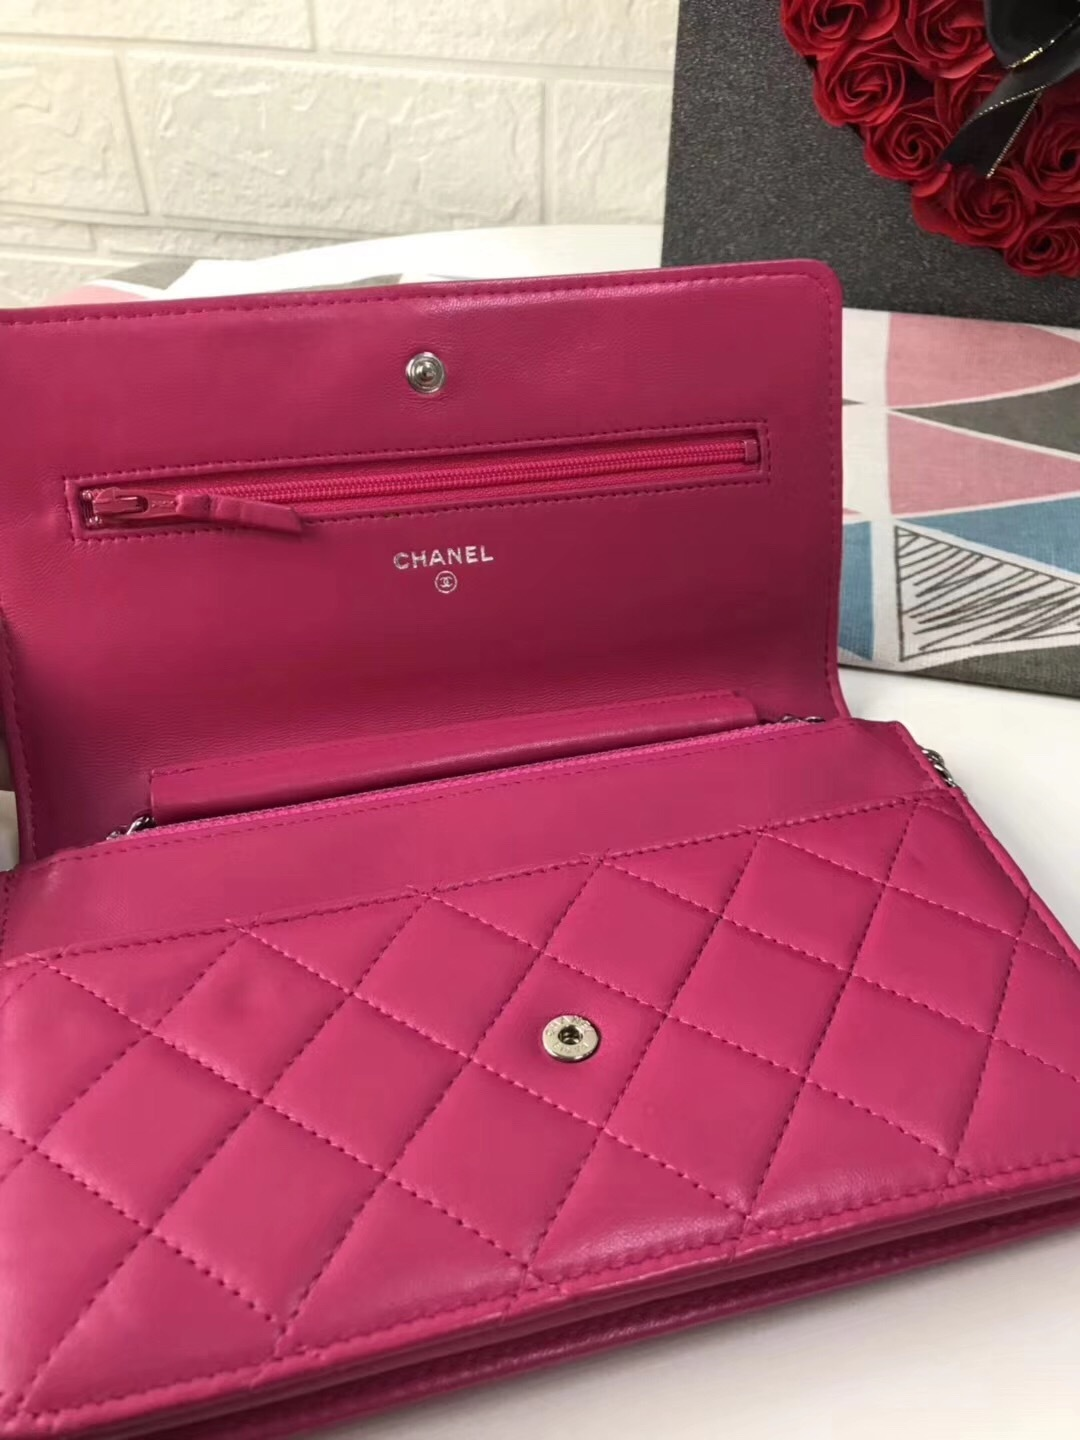 100% AUTH CHANEL WOC Quilted Lambskin PINK Wallet on Chain Flap Bag SHW image 5